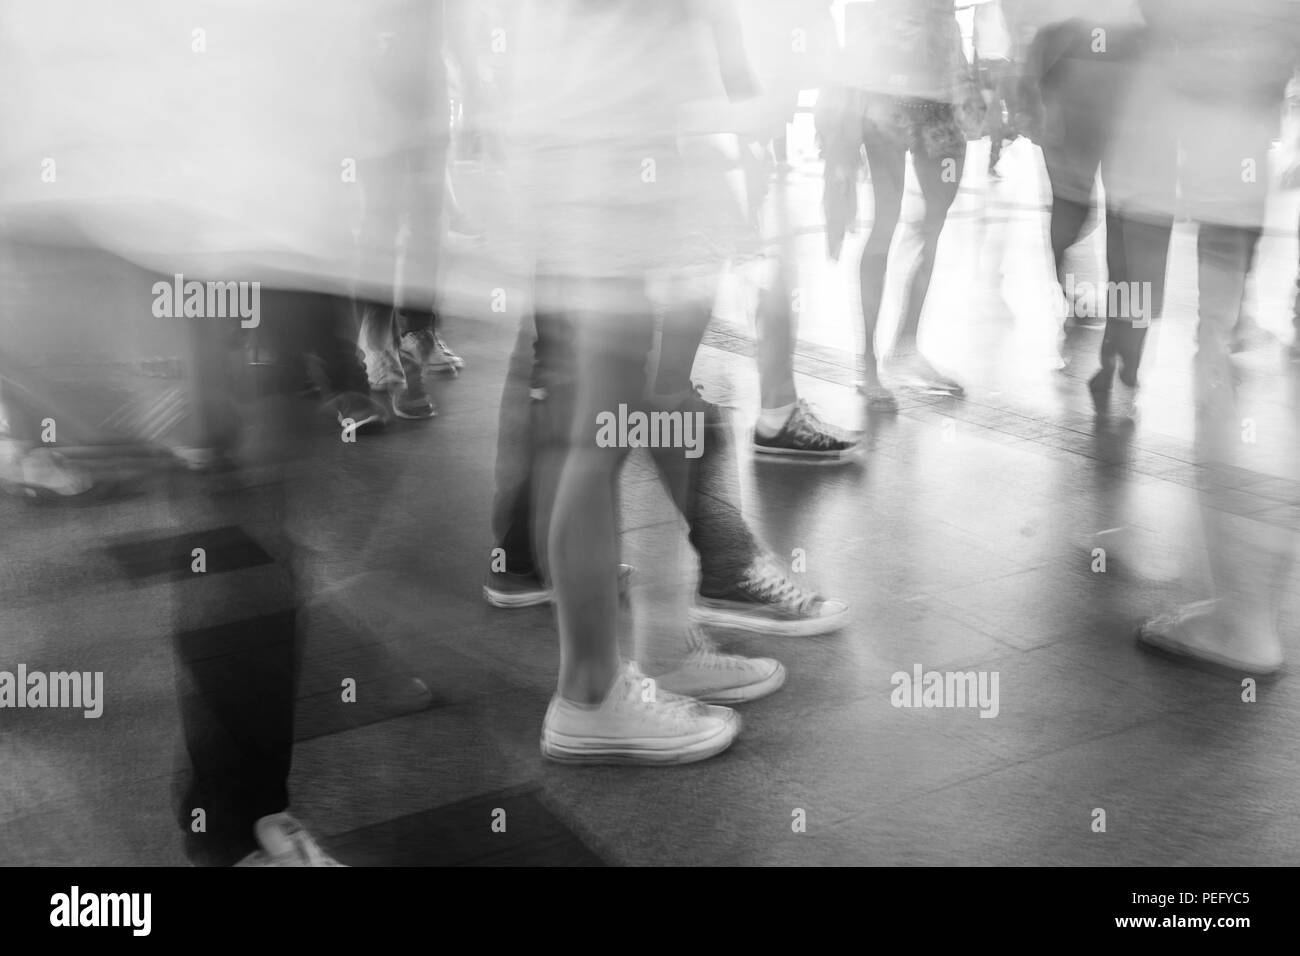 Motion blur crowded people walking in fashion mall in black and white - Stock Image